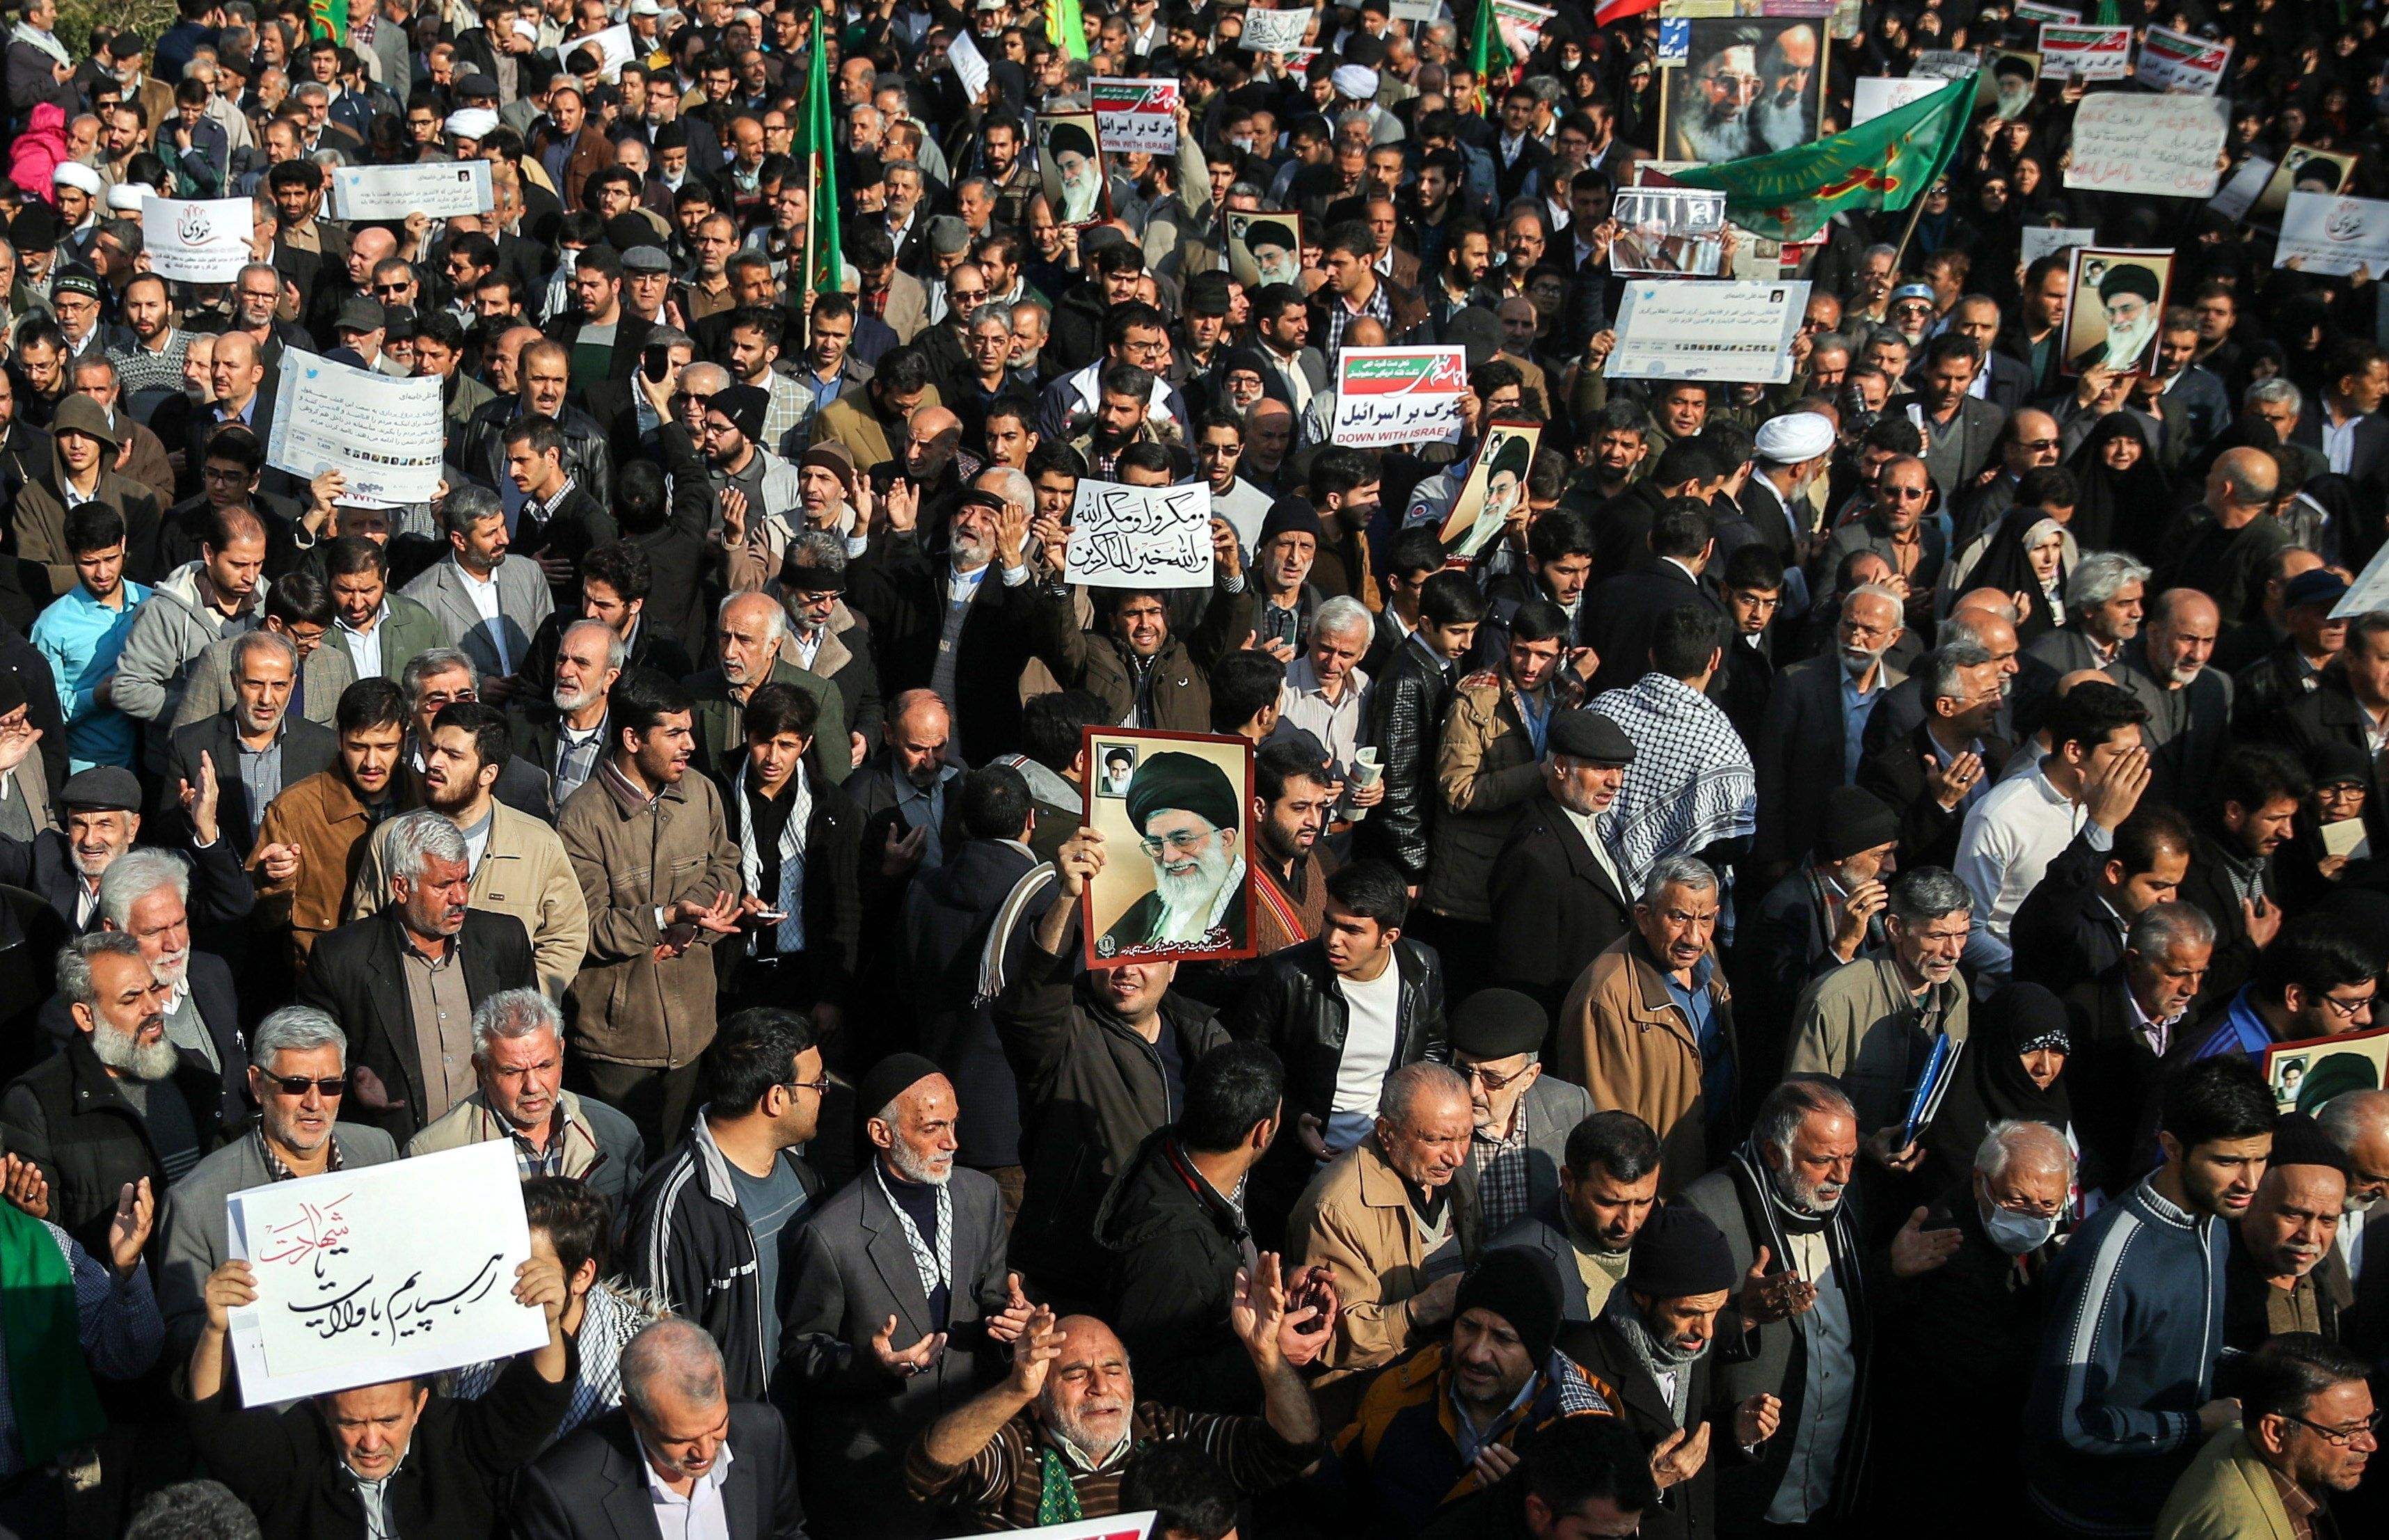 What to make of Iran's demonstrations